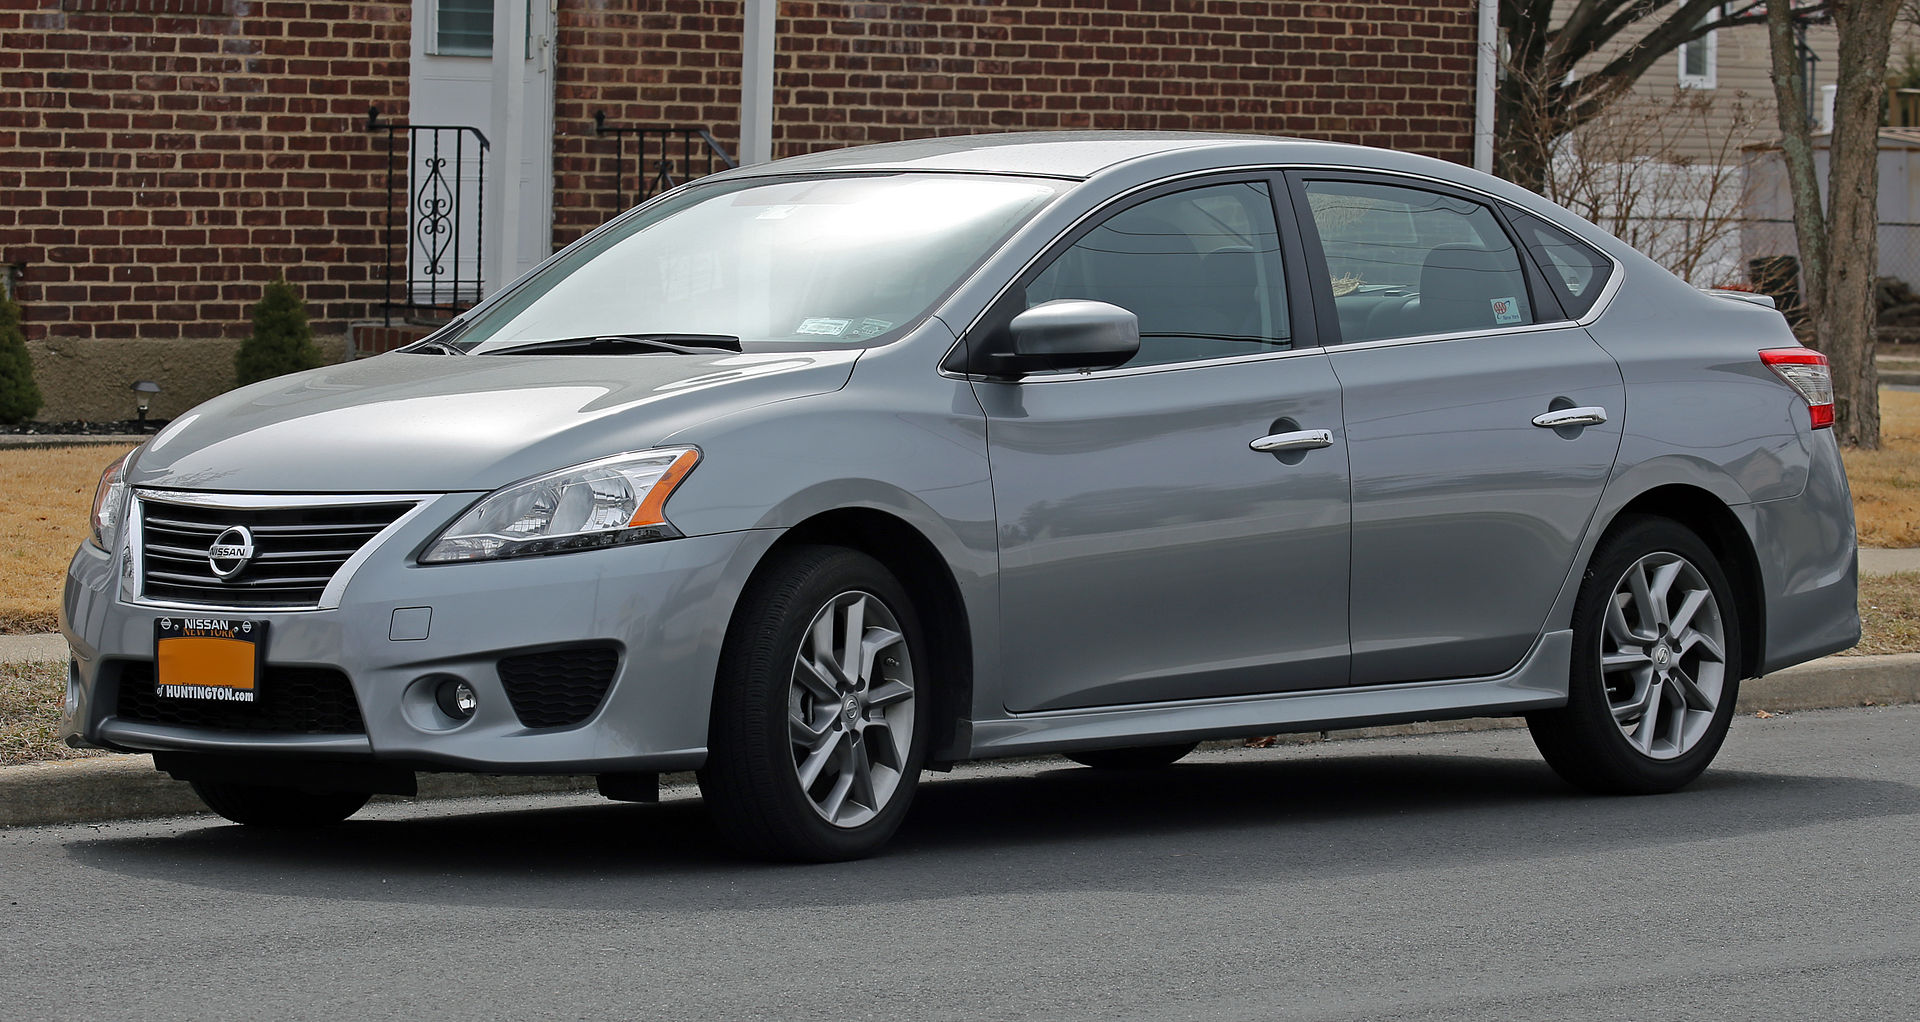 Nissan Pulsar All New Car Review and Specs 2018 2019